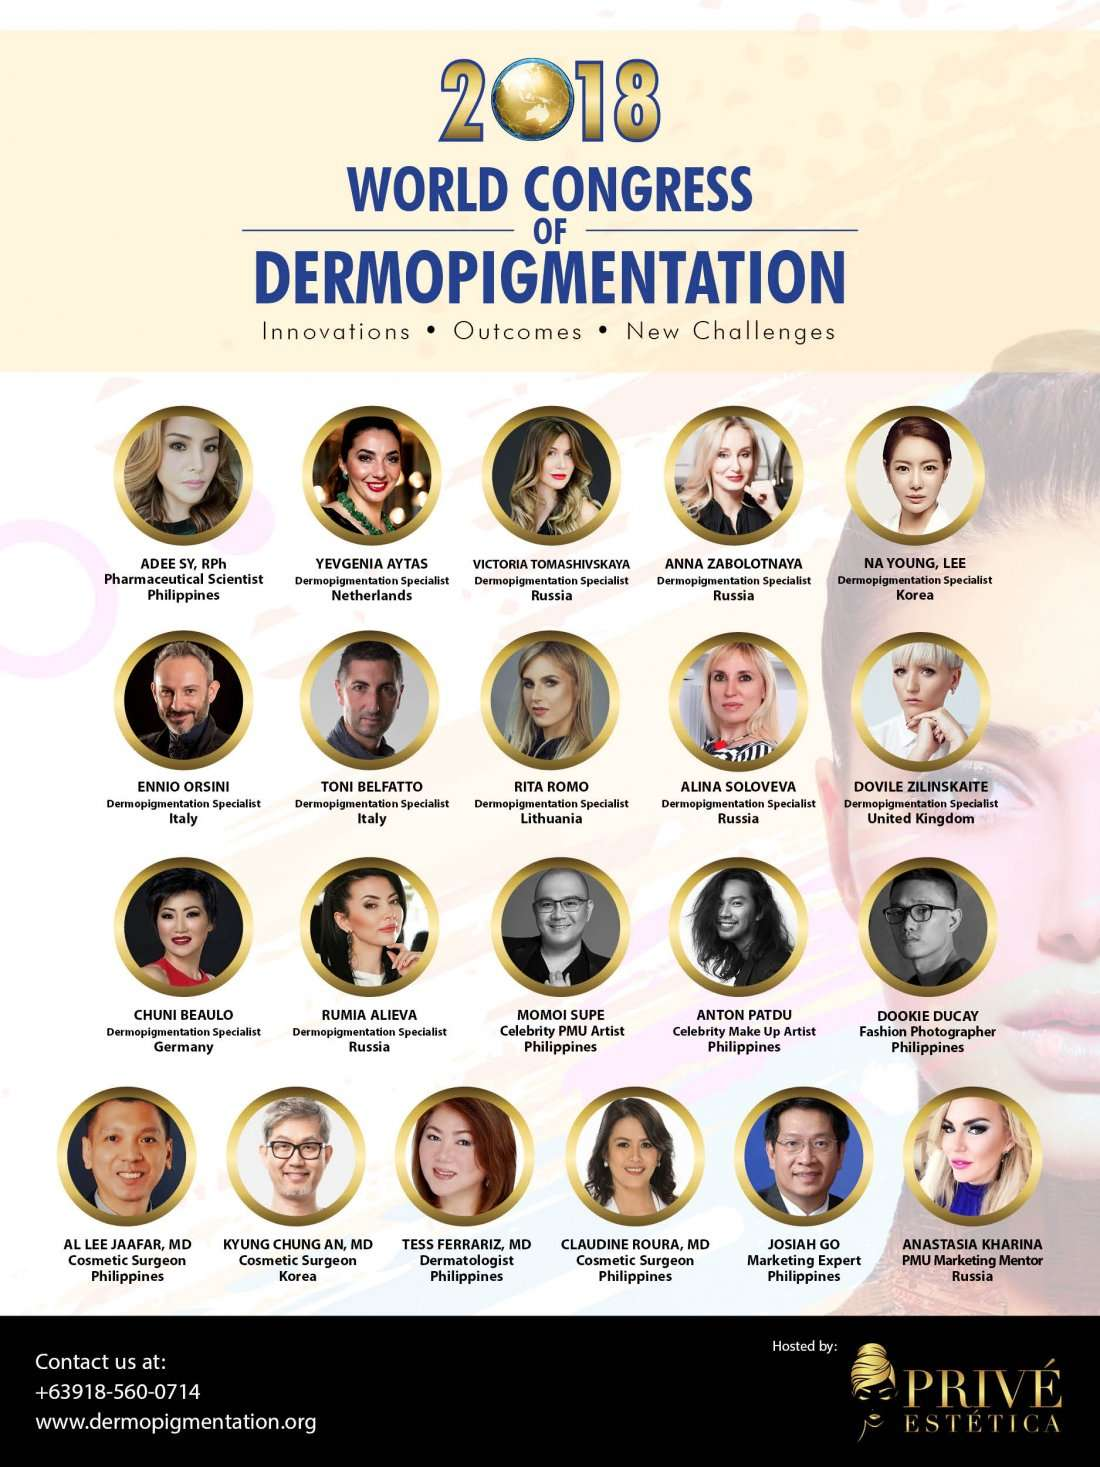 World Congress of Dermopigmentation 2018